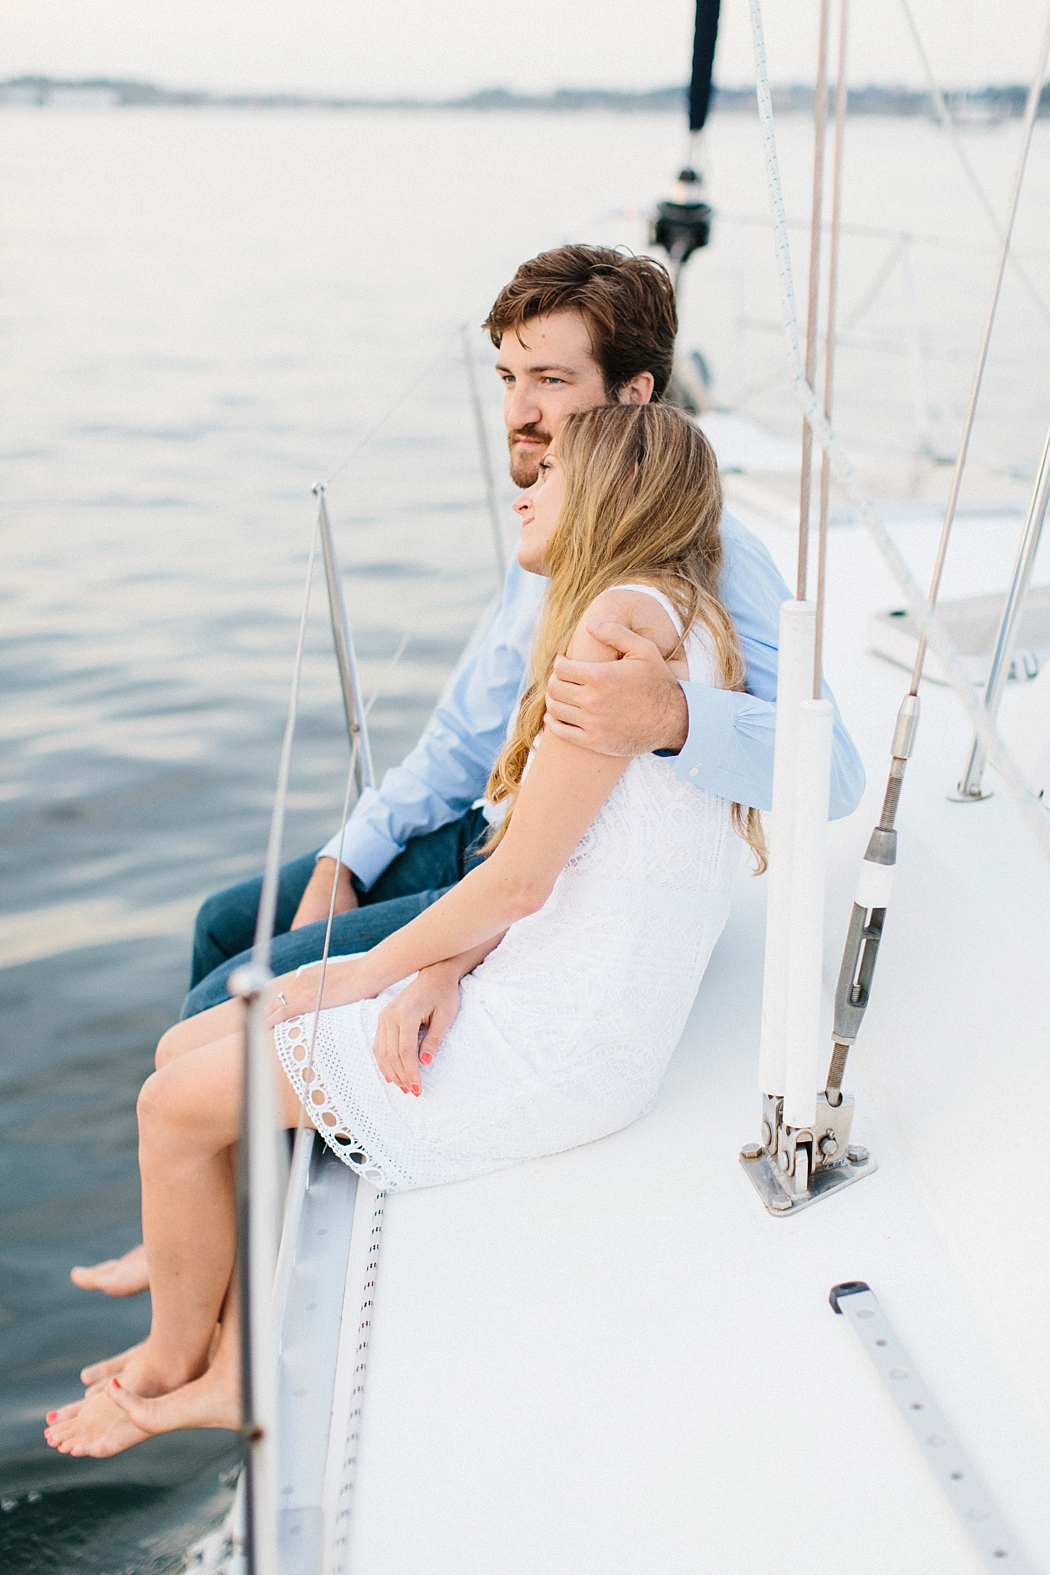 couple on sailboat| © Erin McGinn Photography | www.erinmcginn.com